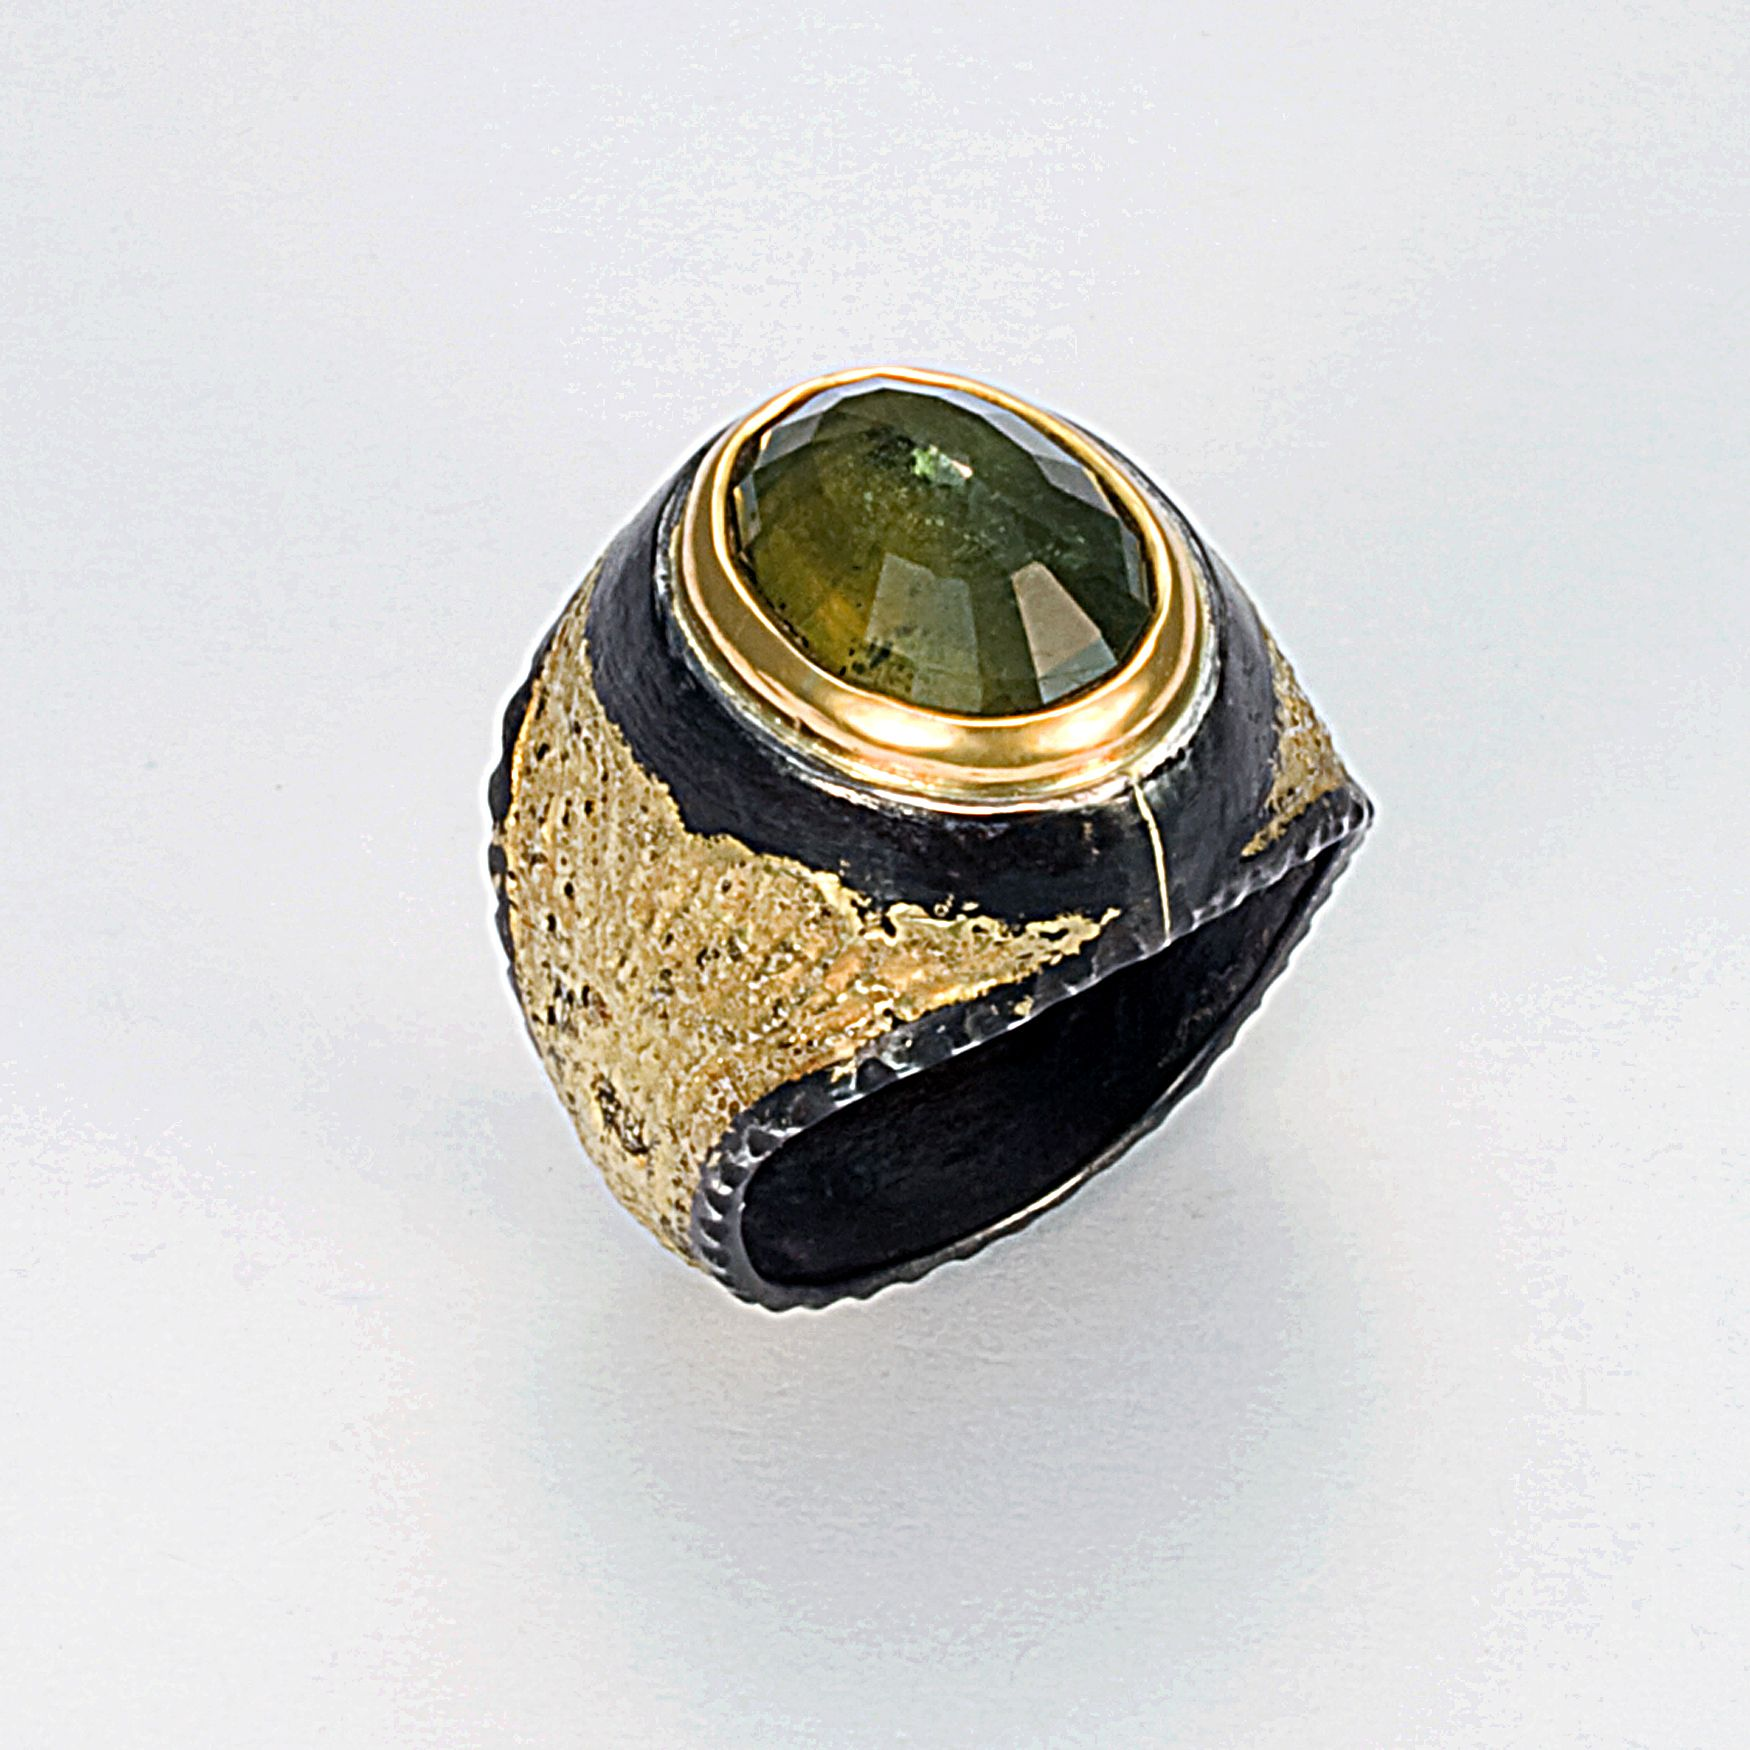 Hand textured iron, fused with 20karat gold.  5.84 ct. green sapphire set in 22karat gold.  Obscure art deco patina.